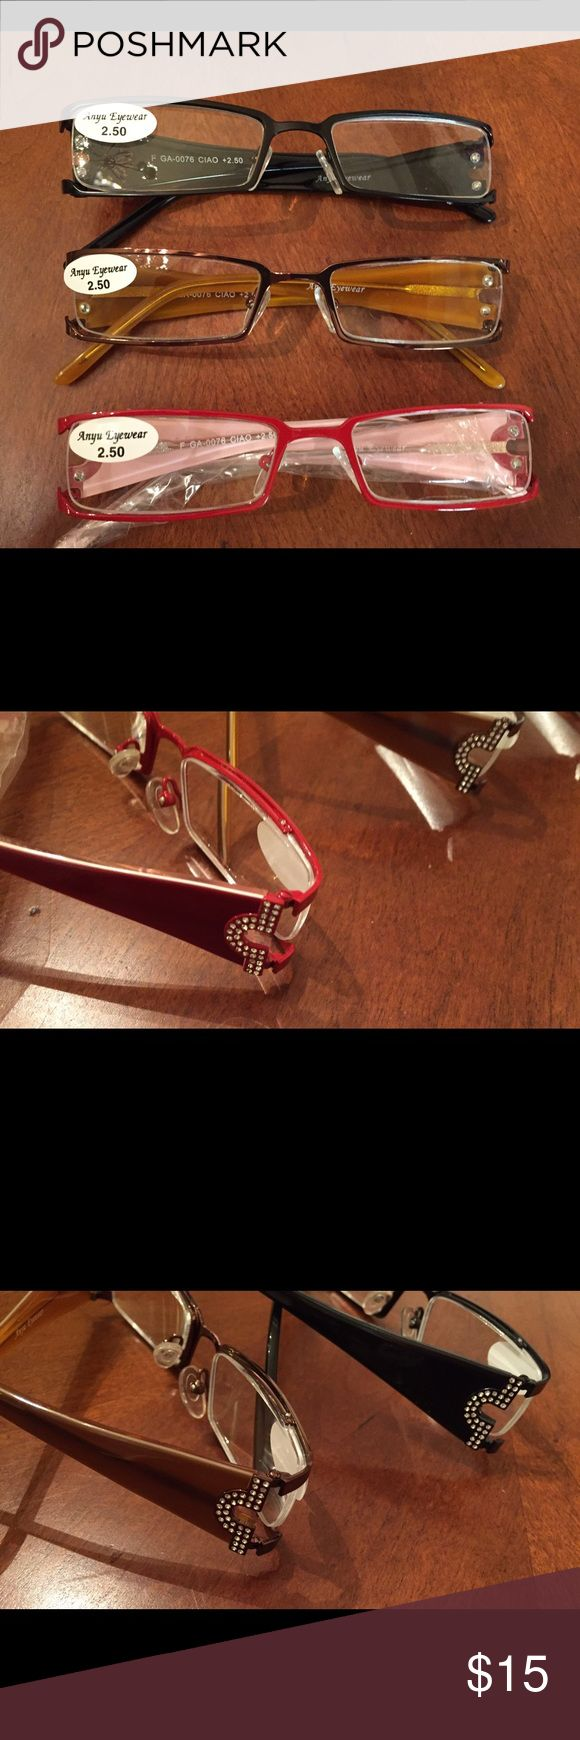 3 Pair of Reading Glasses Same with these I thought I could get by without going to the eye doctor. They are very cute, 1 red 1 black and 1 bronze, they have a little decorative pattern on the arm with silver sequins. NWT Anyu Eyewear Accessories Glasses